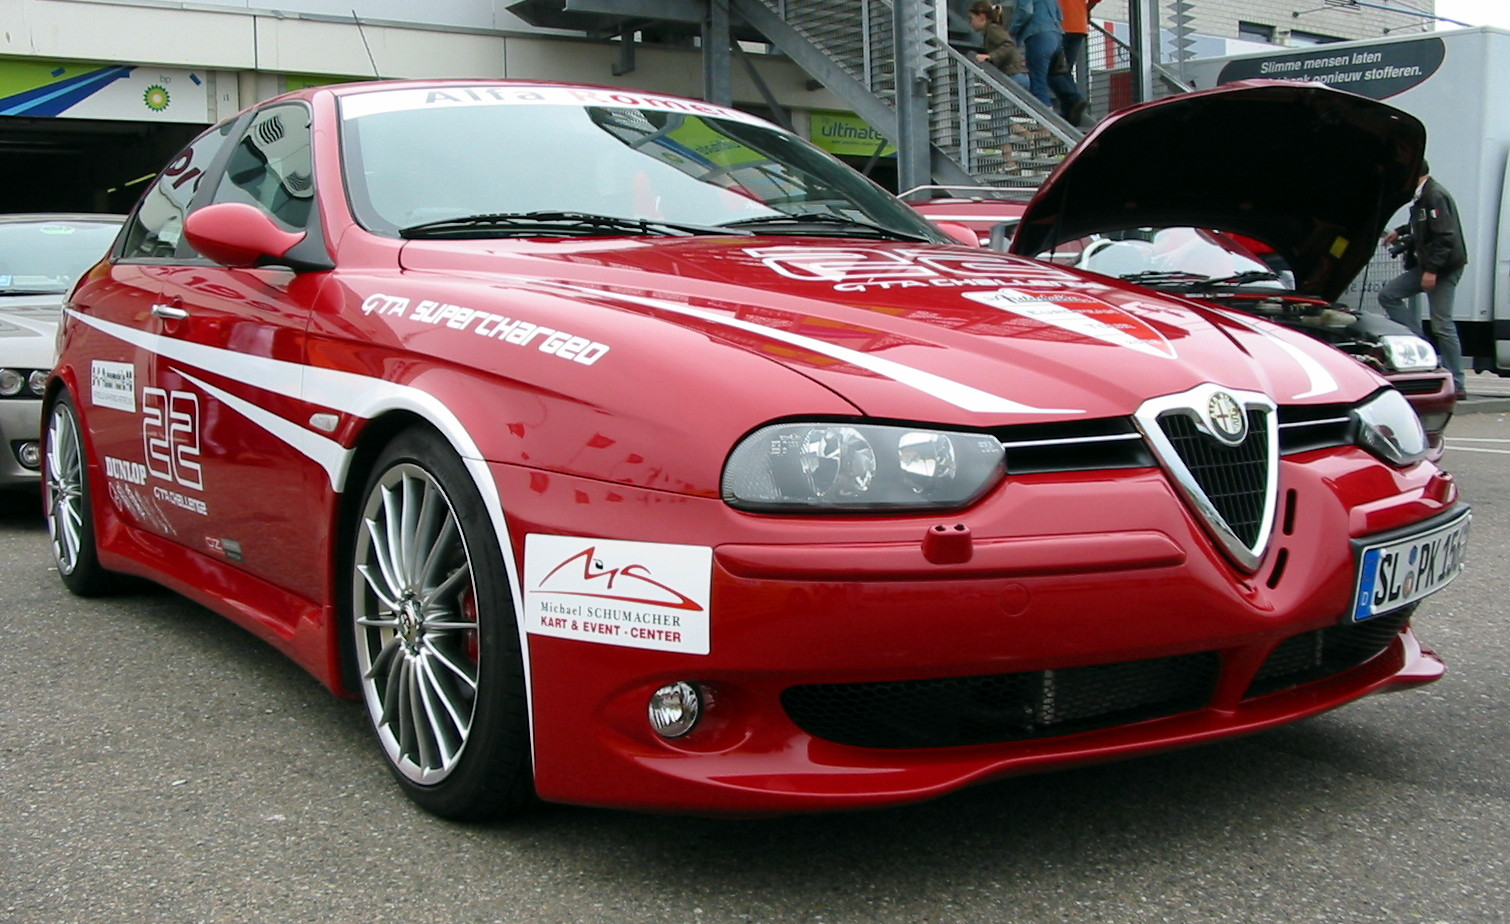 Alfa Romeo 156 GTA Car Pictures High Resolution Image Wallpapers Download